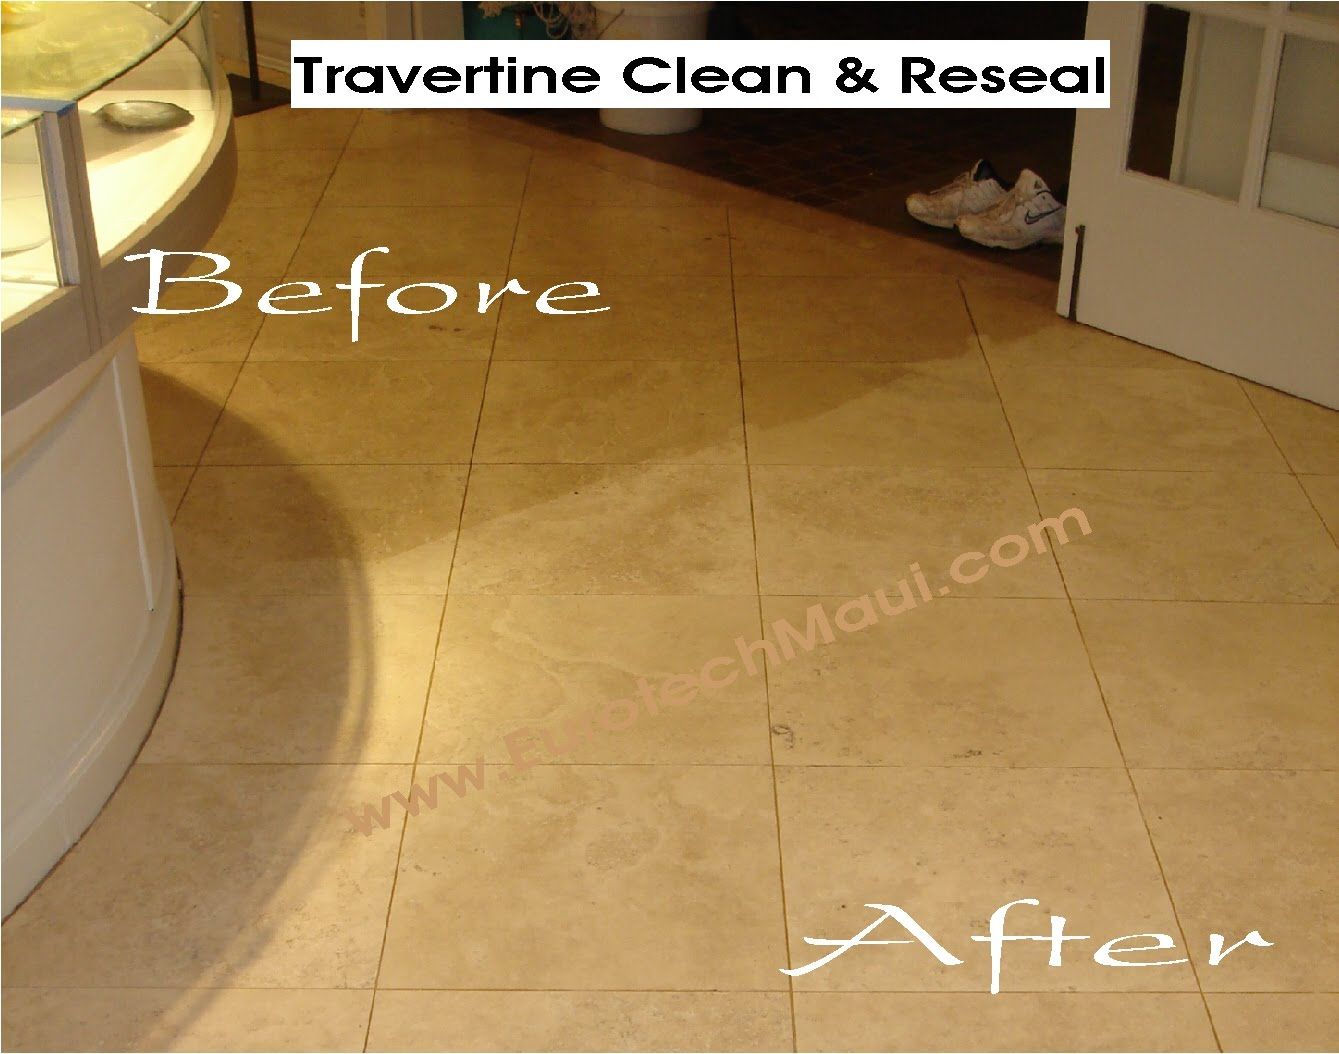 Travertine Countertop Care Eurotech Marble Stone Tile Care Maui Hawaii 808 877 0222